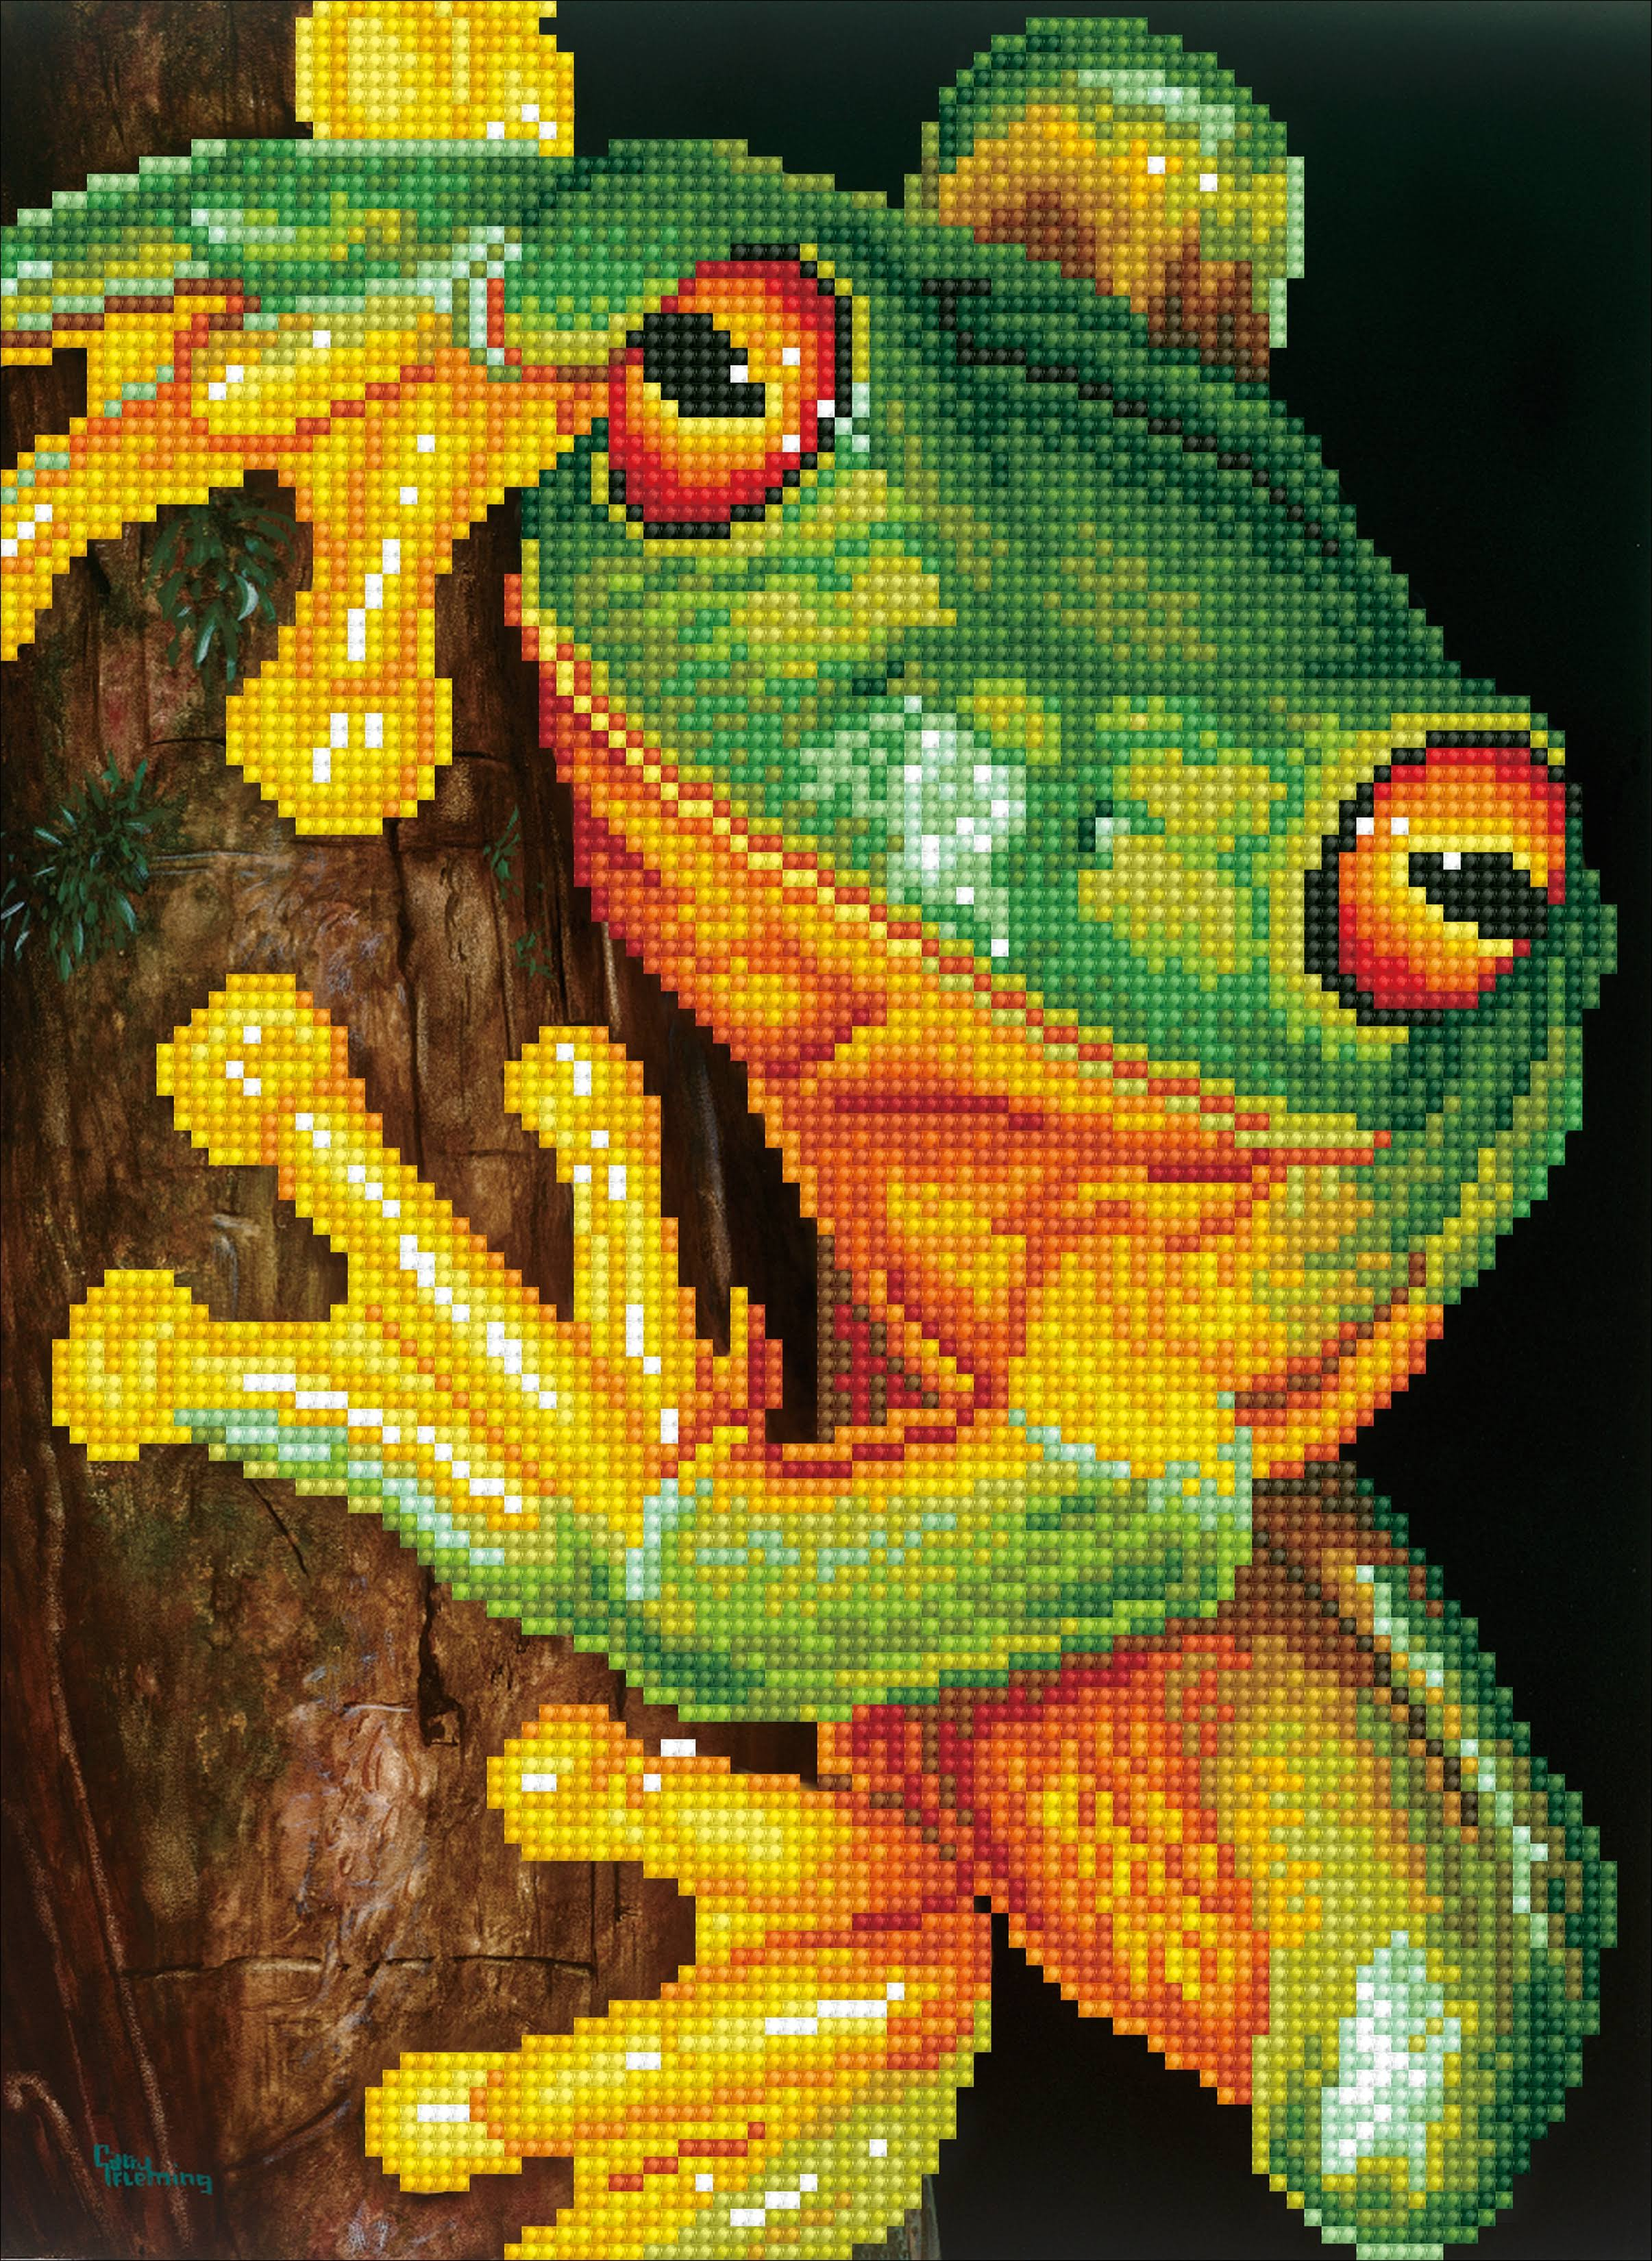 Diamond Dotz 5D Embroidery Facet Art Kit - Green Tree Frog, 27cm x 37cm